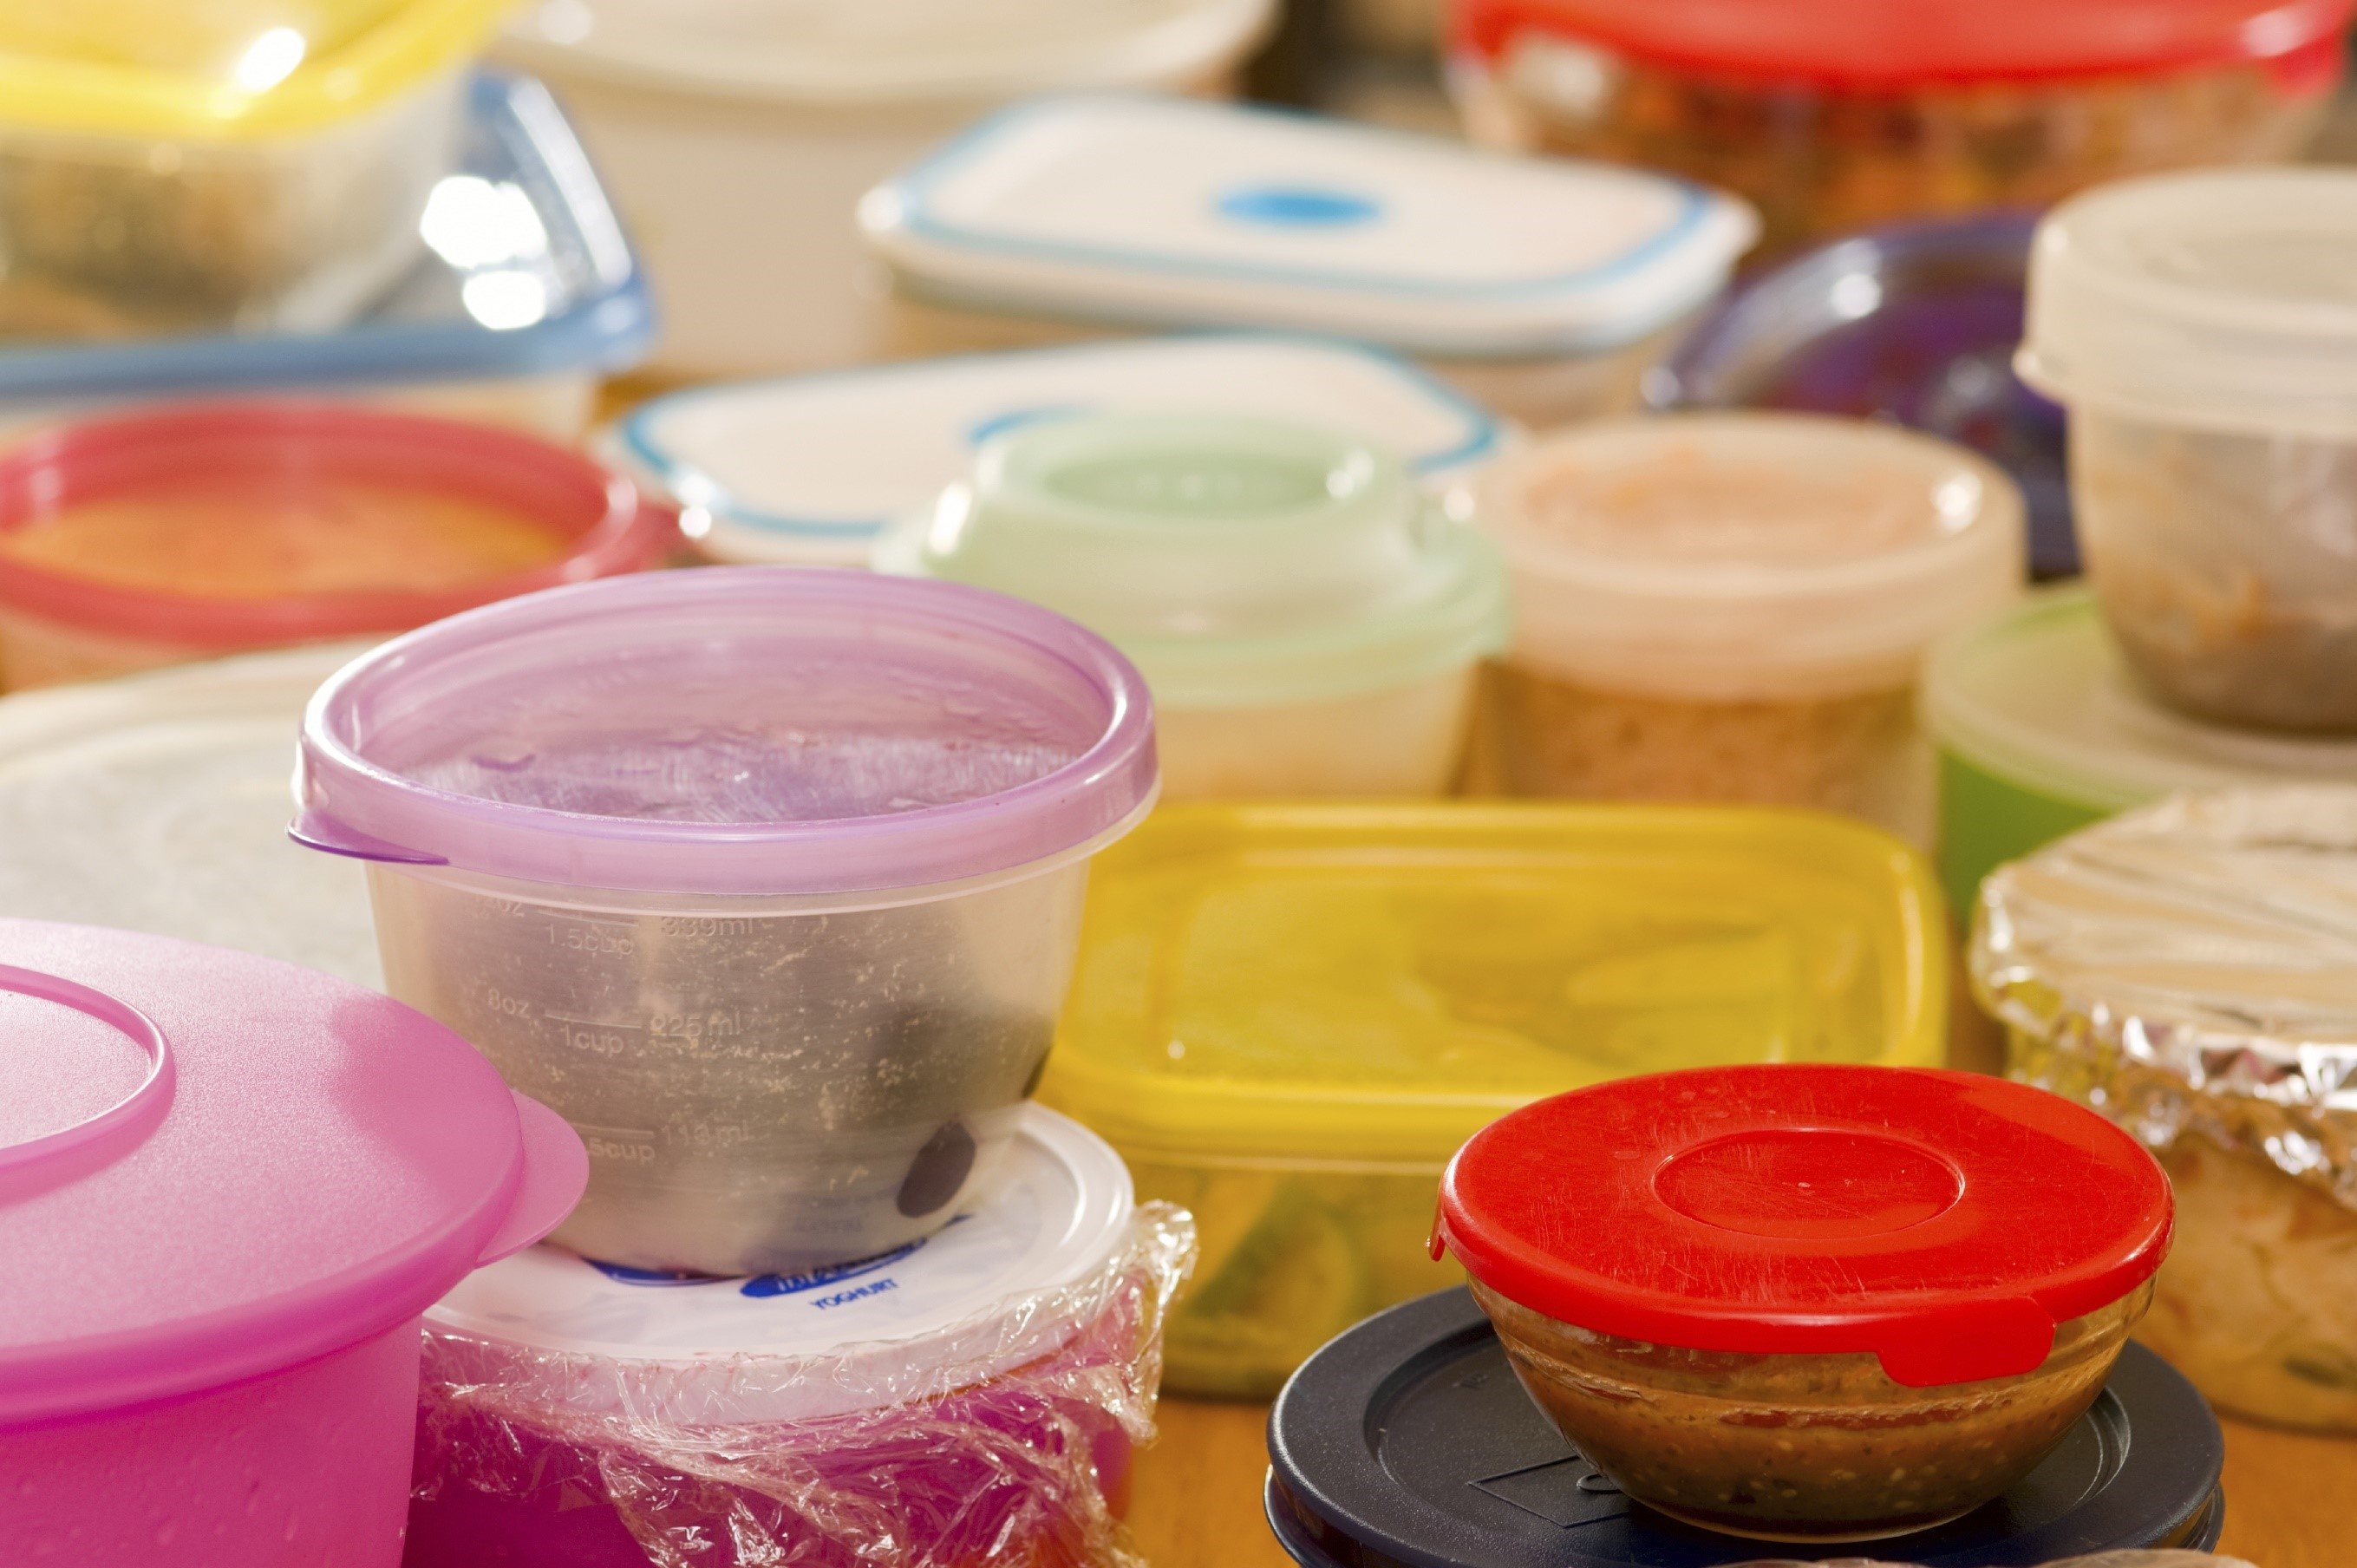 Plastic Food Containers Clean Living American Cleaning